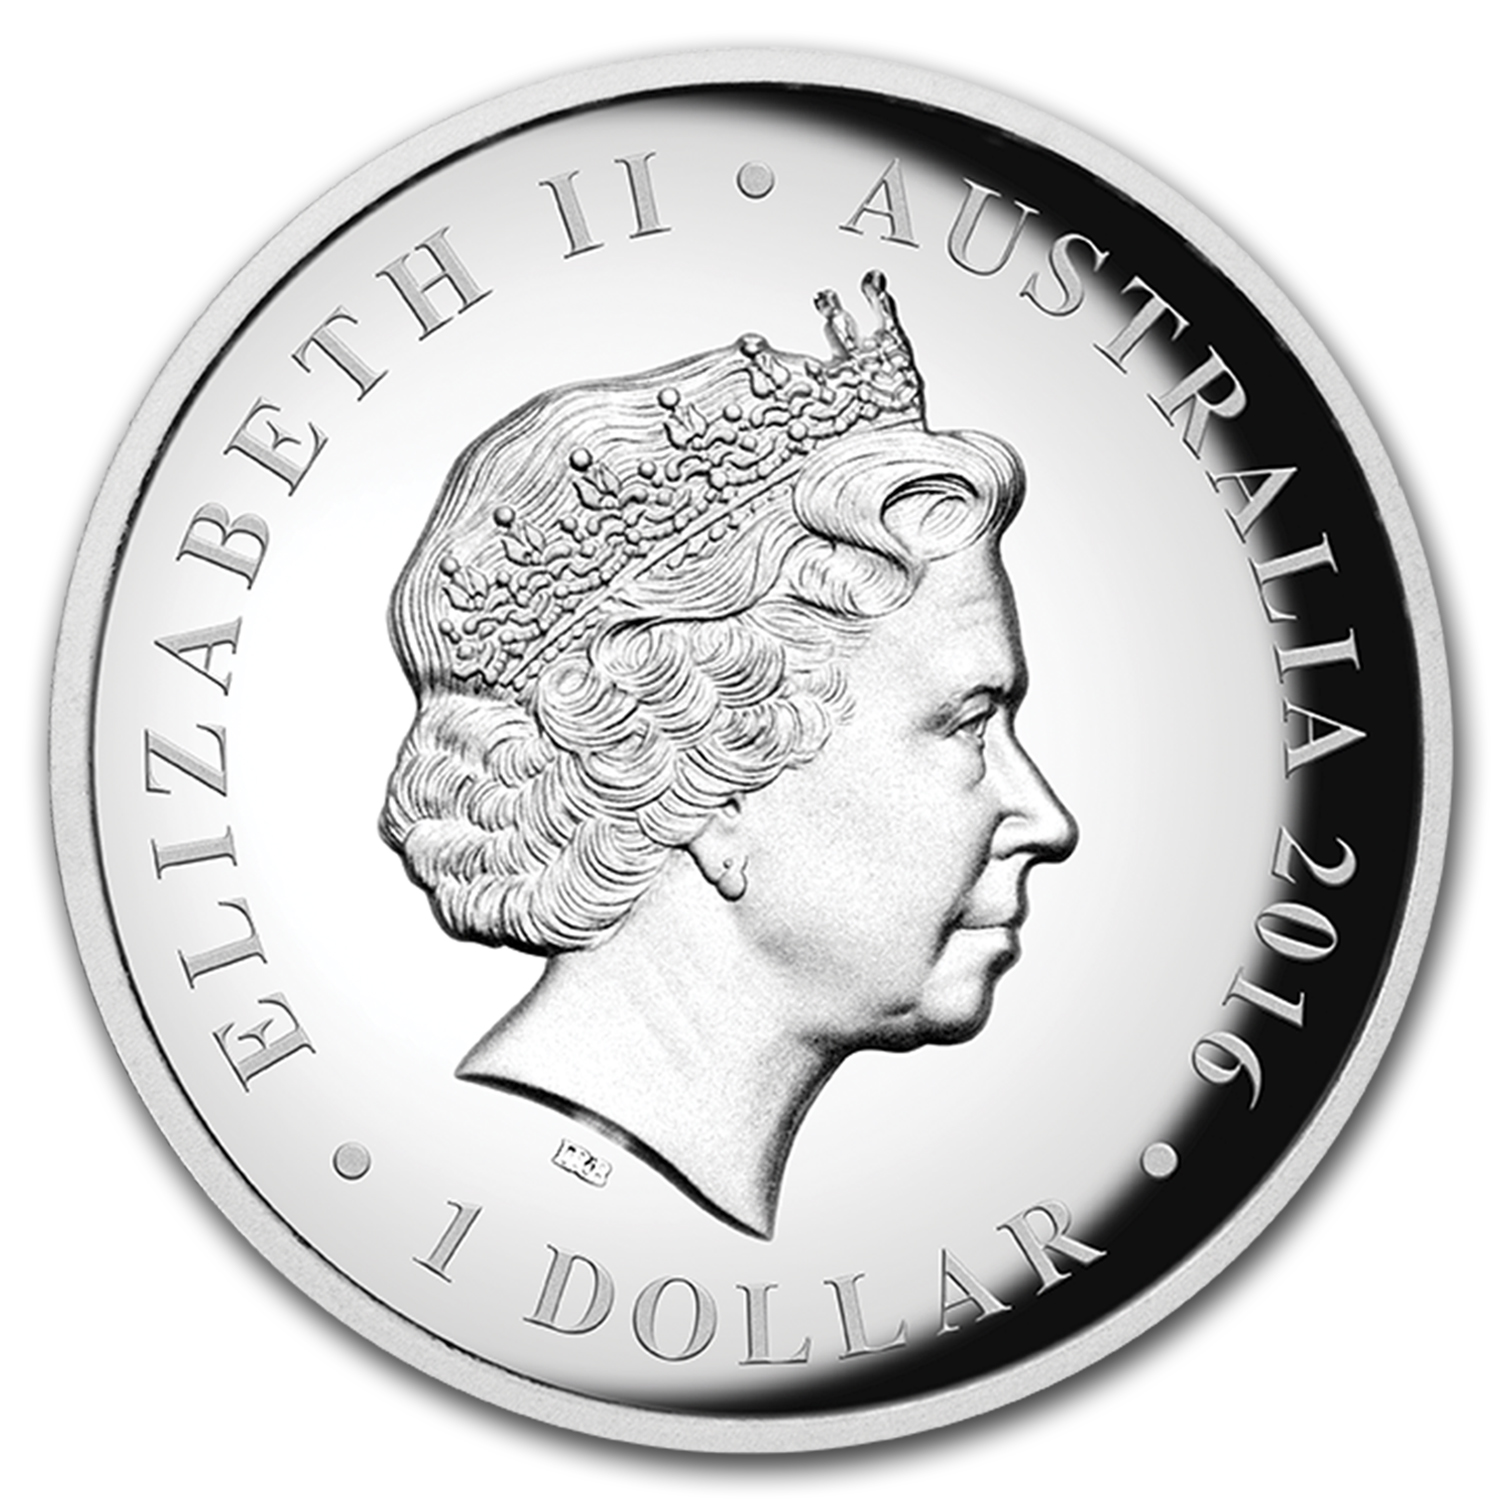 2016 Australia 1 oz Silver High Relief Queen's 90th Birthday